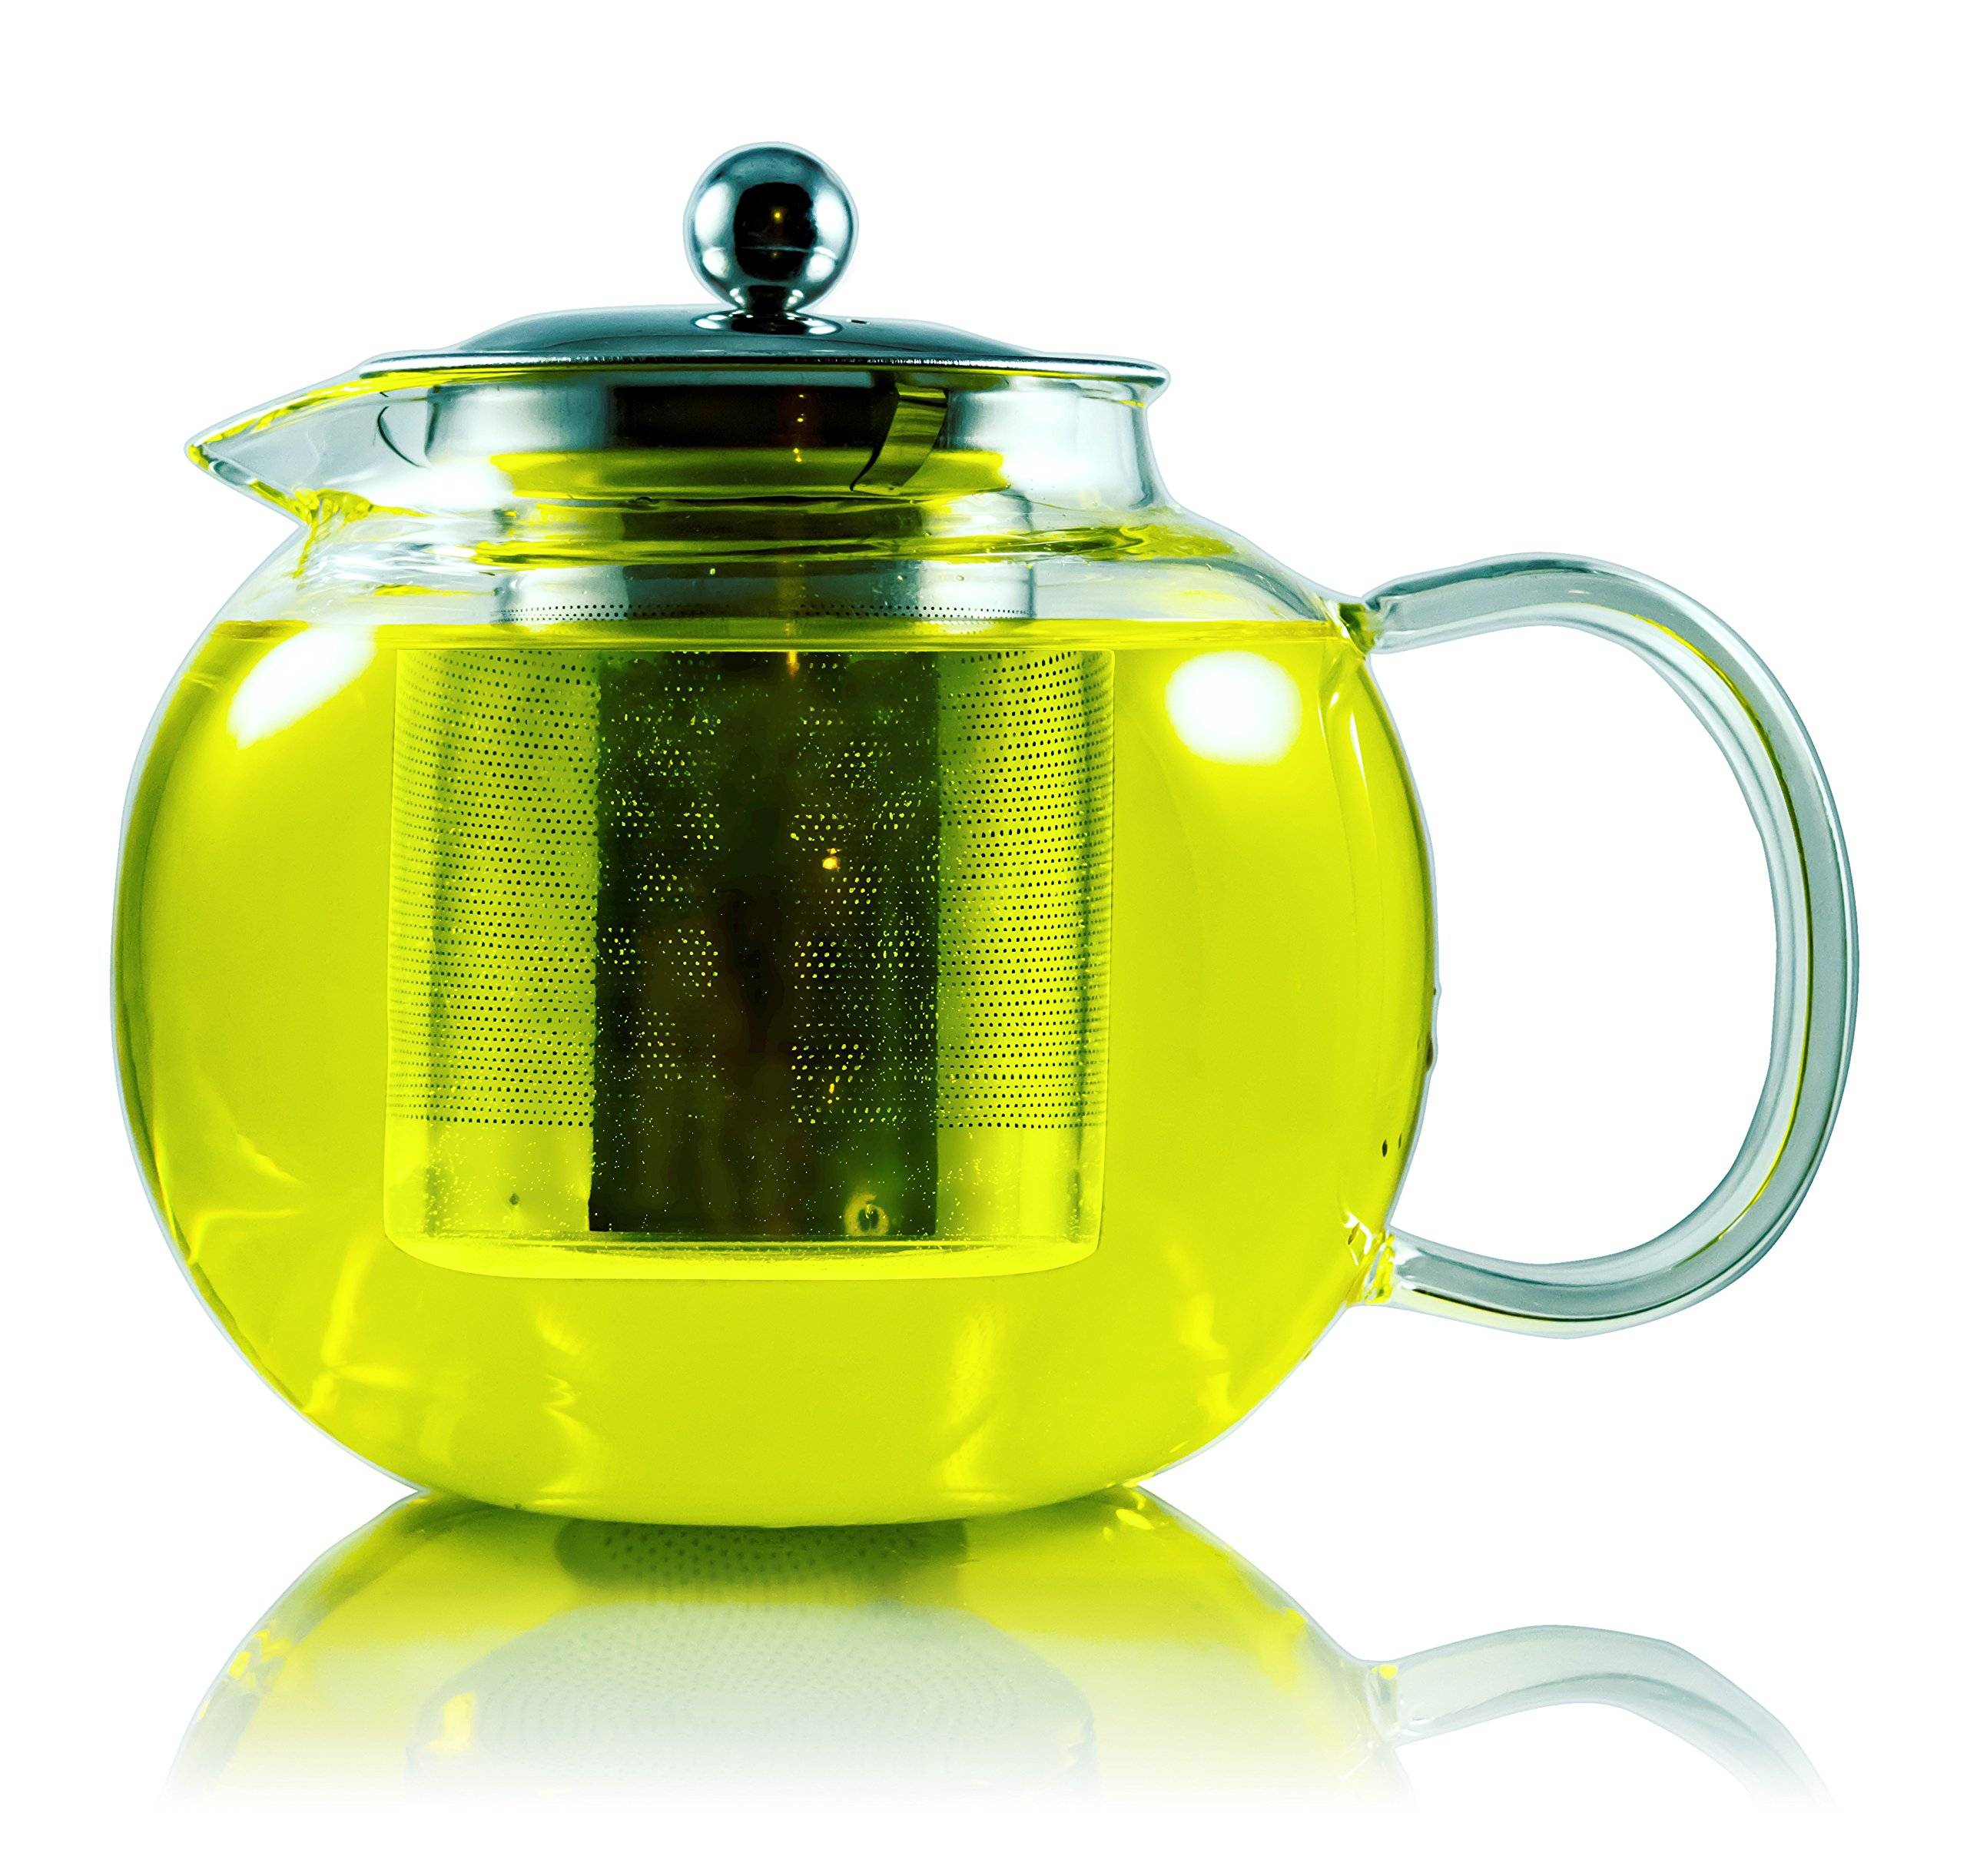 Kikn Kitchen Teapot w/ Stainless Steal Infuser 1000ml (4 cups) for Loose Leaf Tea, Cold Brew Coffee, and Fruit Infusing